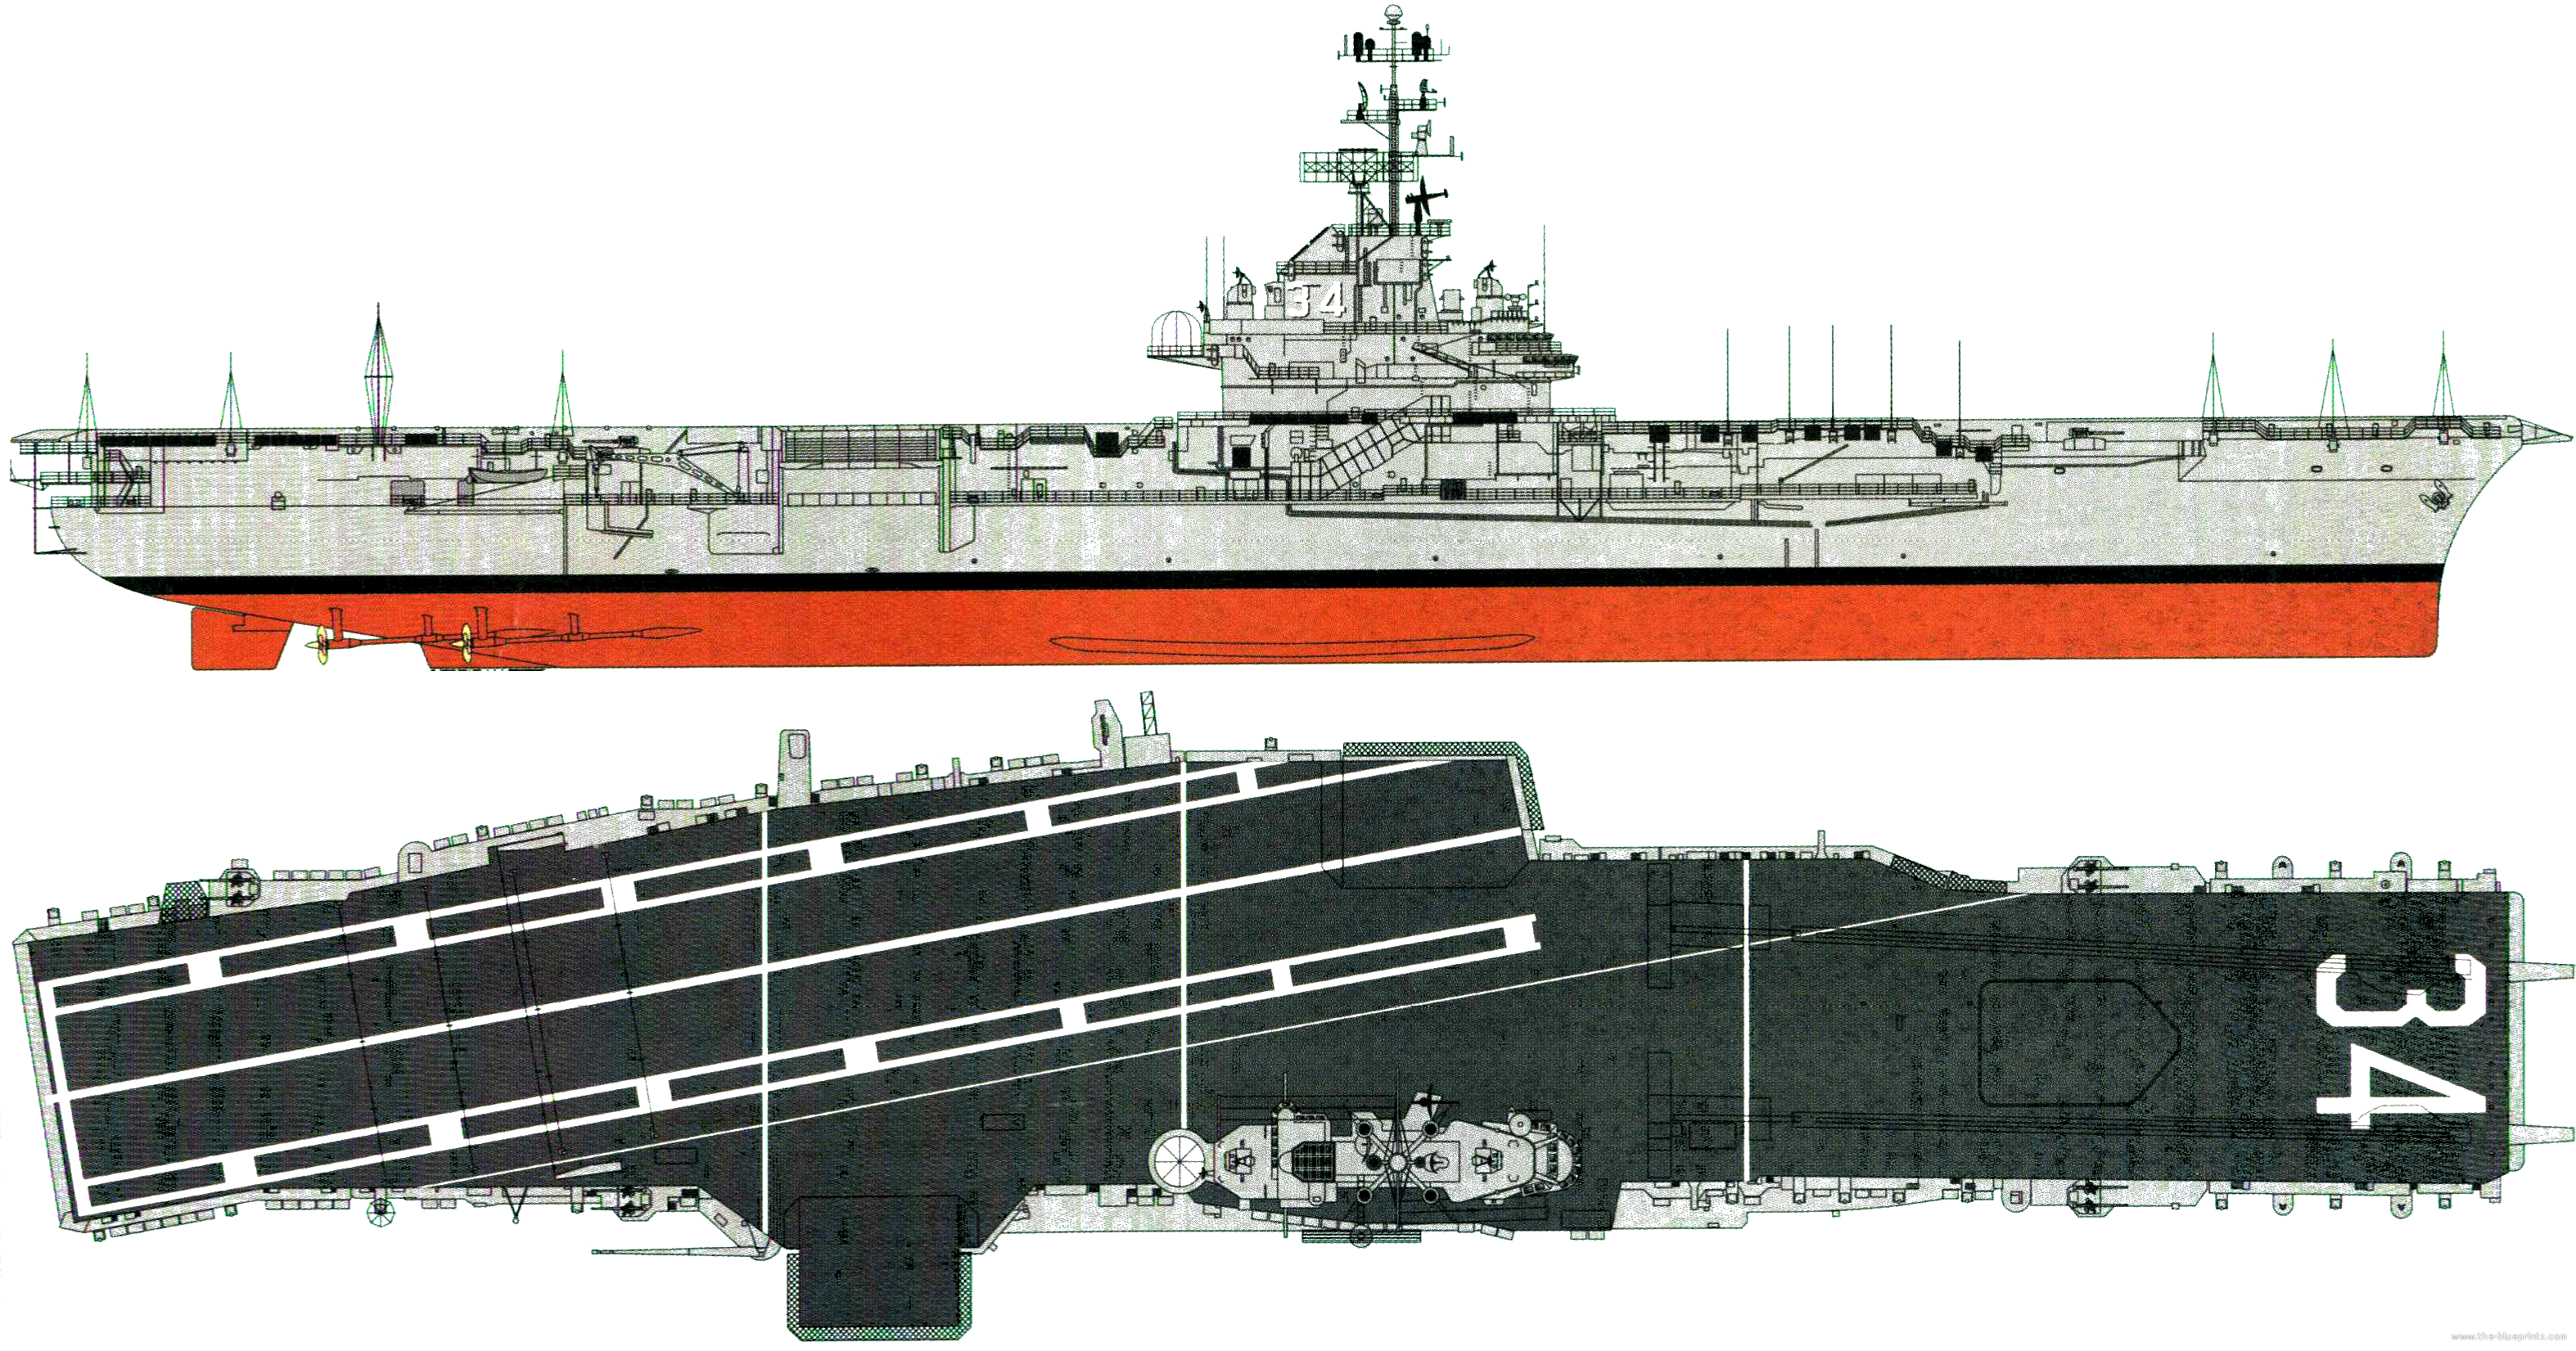 Car Carrier For Sale >> The-Blueprints.com - Blueprints > Ships > Carriers (US) > USS CV-34 Oriskany [Aircraft Carrier]